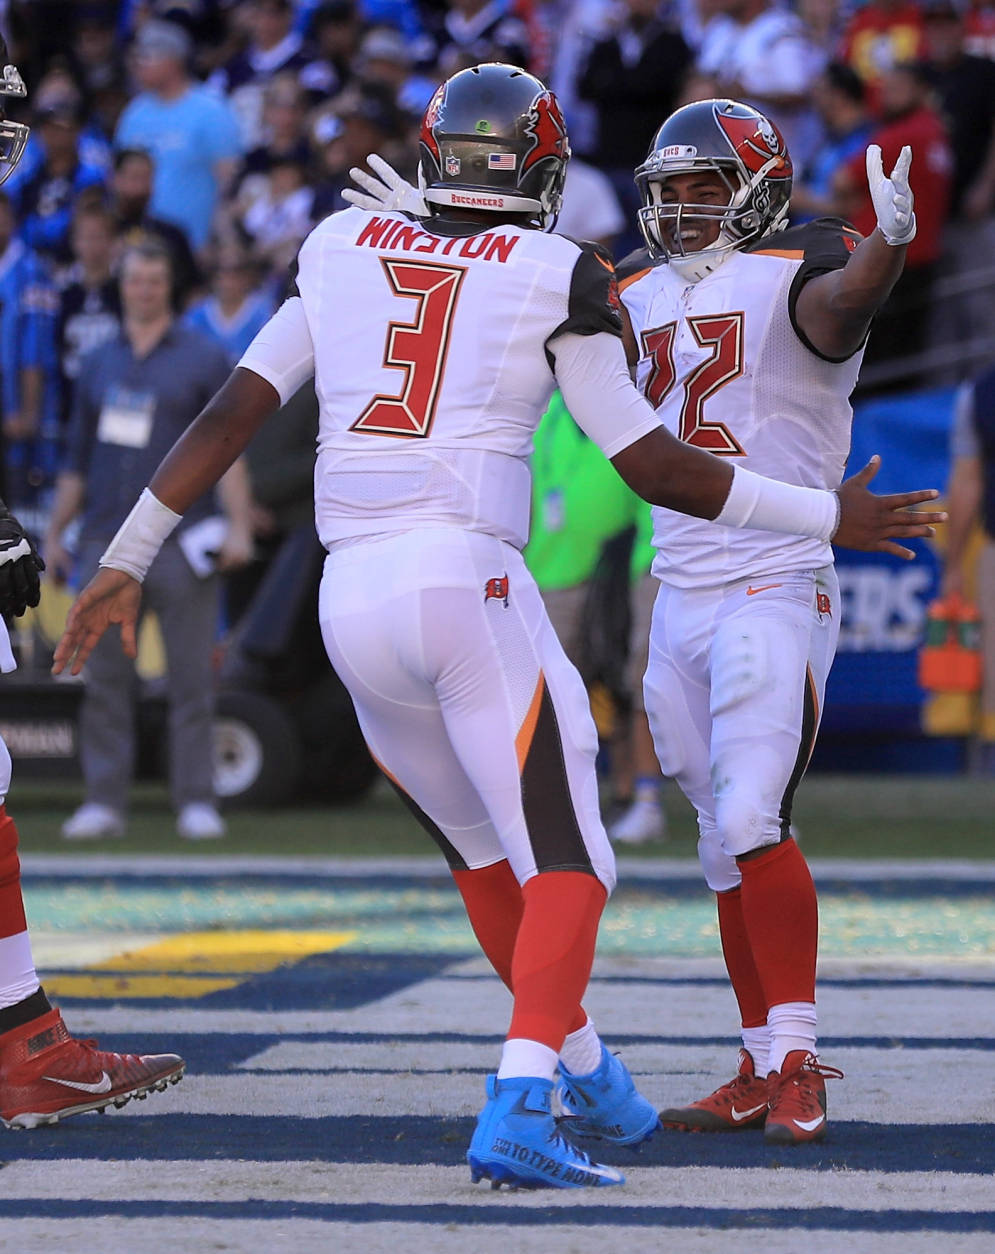 SAN DIEGO, CA - DECEMBER 04:  Jameis Winston #3 reacts with  Doug Martin #22 of the Tampa Bay Buccaneers afrer scoring against the San Diego Chargers during the first half of a game at Qualcomm Stadium on December 4, 2016 in San Diego, California.  (Photo by Sean M. Haffey/Getty Images)